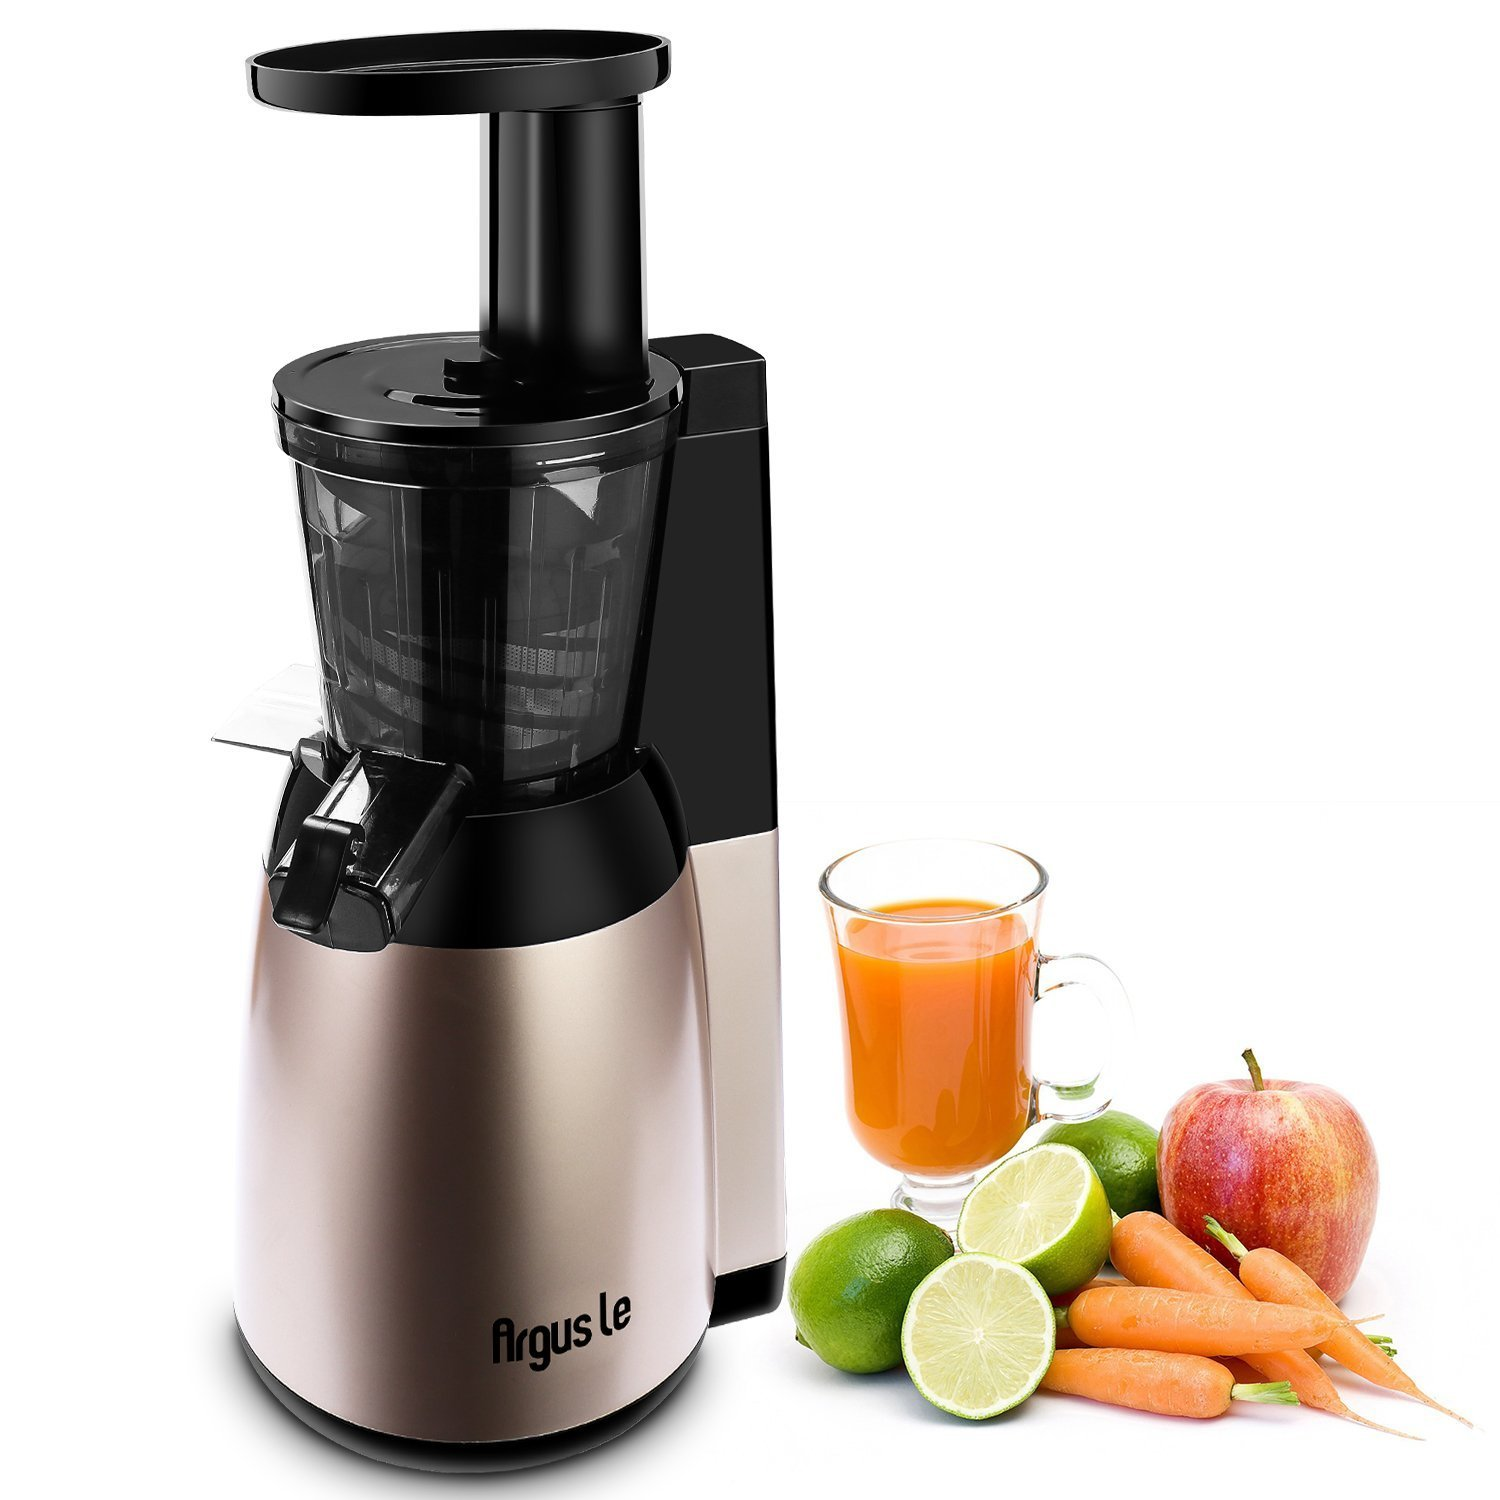 Slow Juicer No Fiber : Argus Le Slow Masticating Juicer Extractor 64% OFF - KosherGuru - Bringing Anything and ...